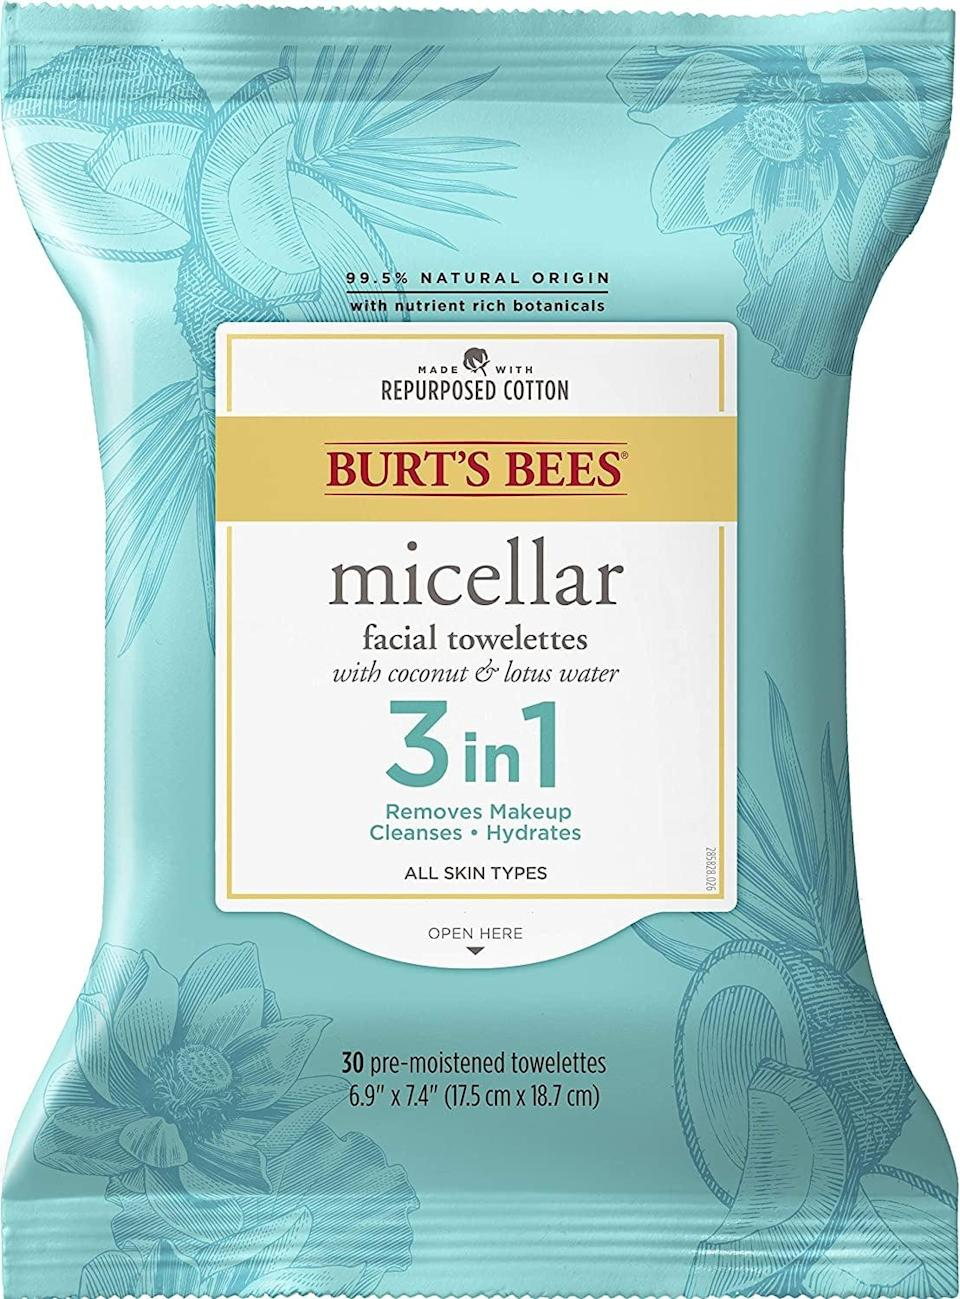 <p>The <span>Burt's Bees 3-in-1 Facial Cleanser Towelettes and Makeup Remover Wipes</span> ($5) are made from repurposed cotton and hydrating ingredients such as coconut water and lotus water. </p>